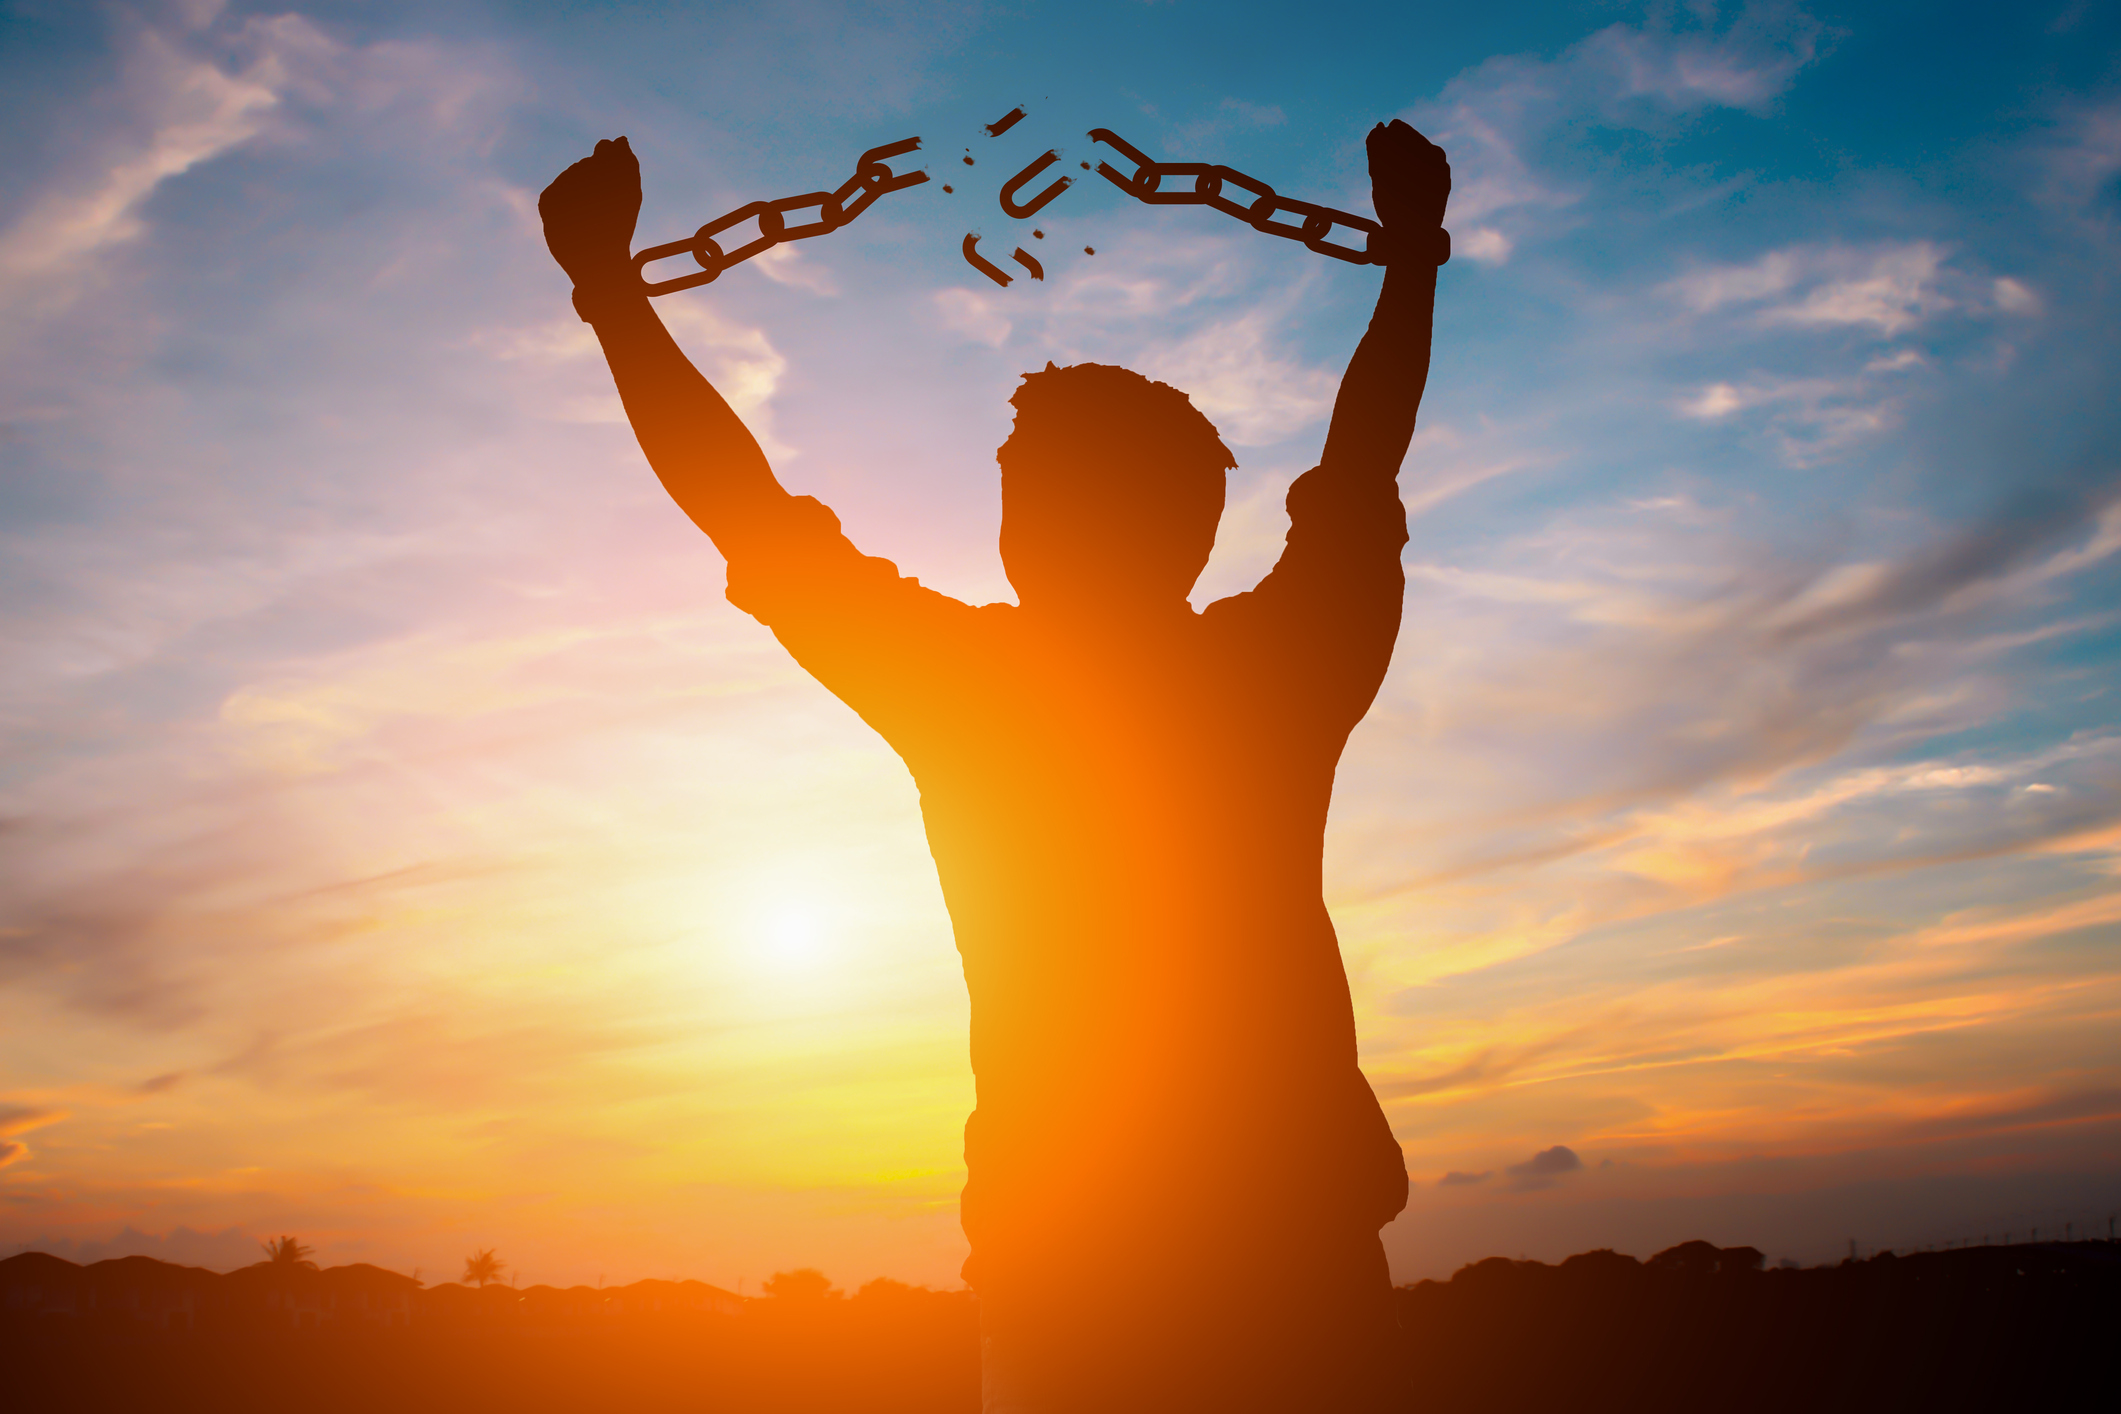 Image of Person Breaking Chains